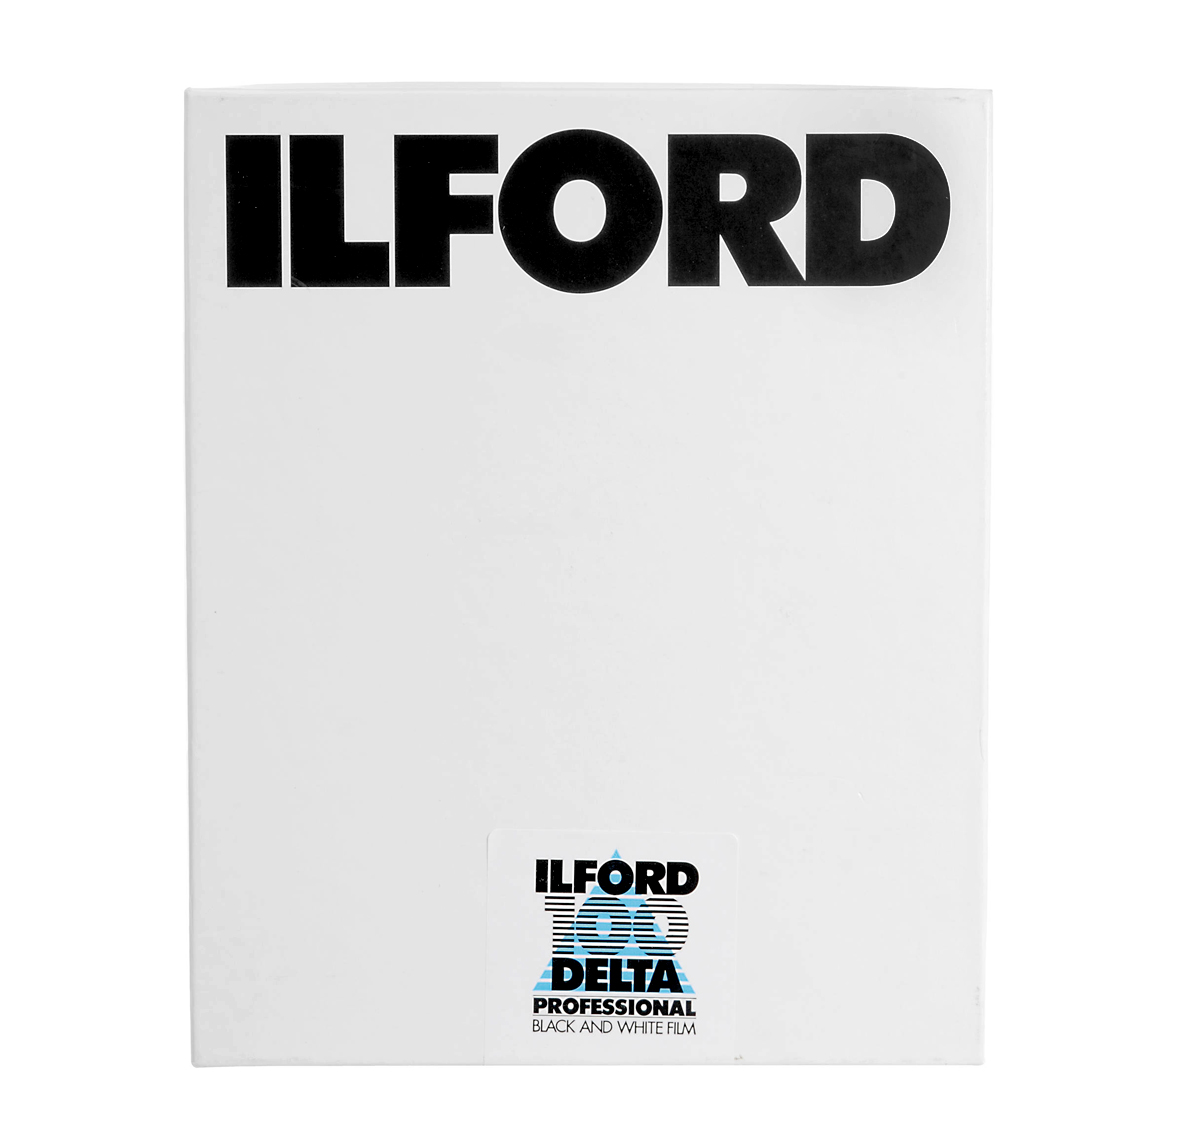 Image of Ilford Delta 100 B&W Negative Film 4 x 5 25 Sheets